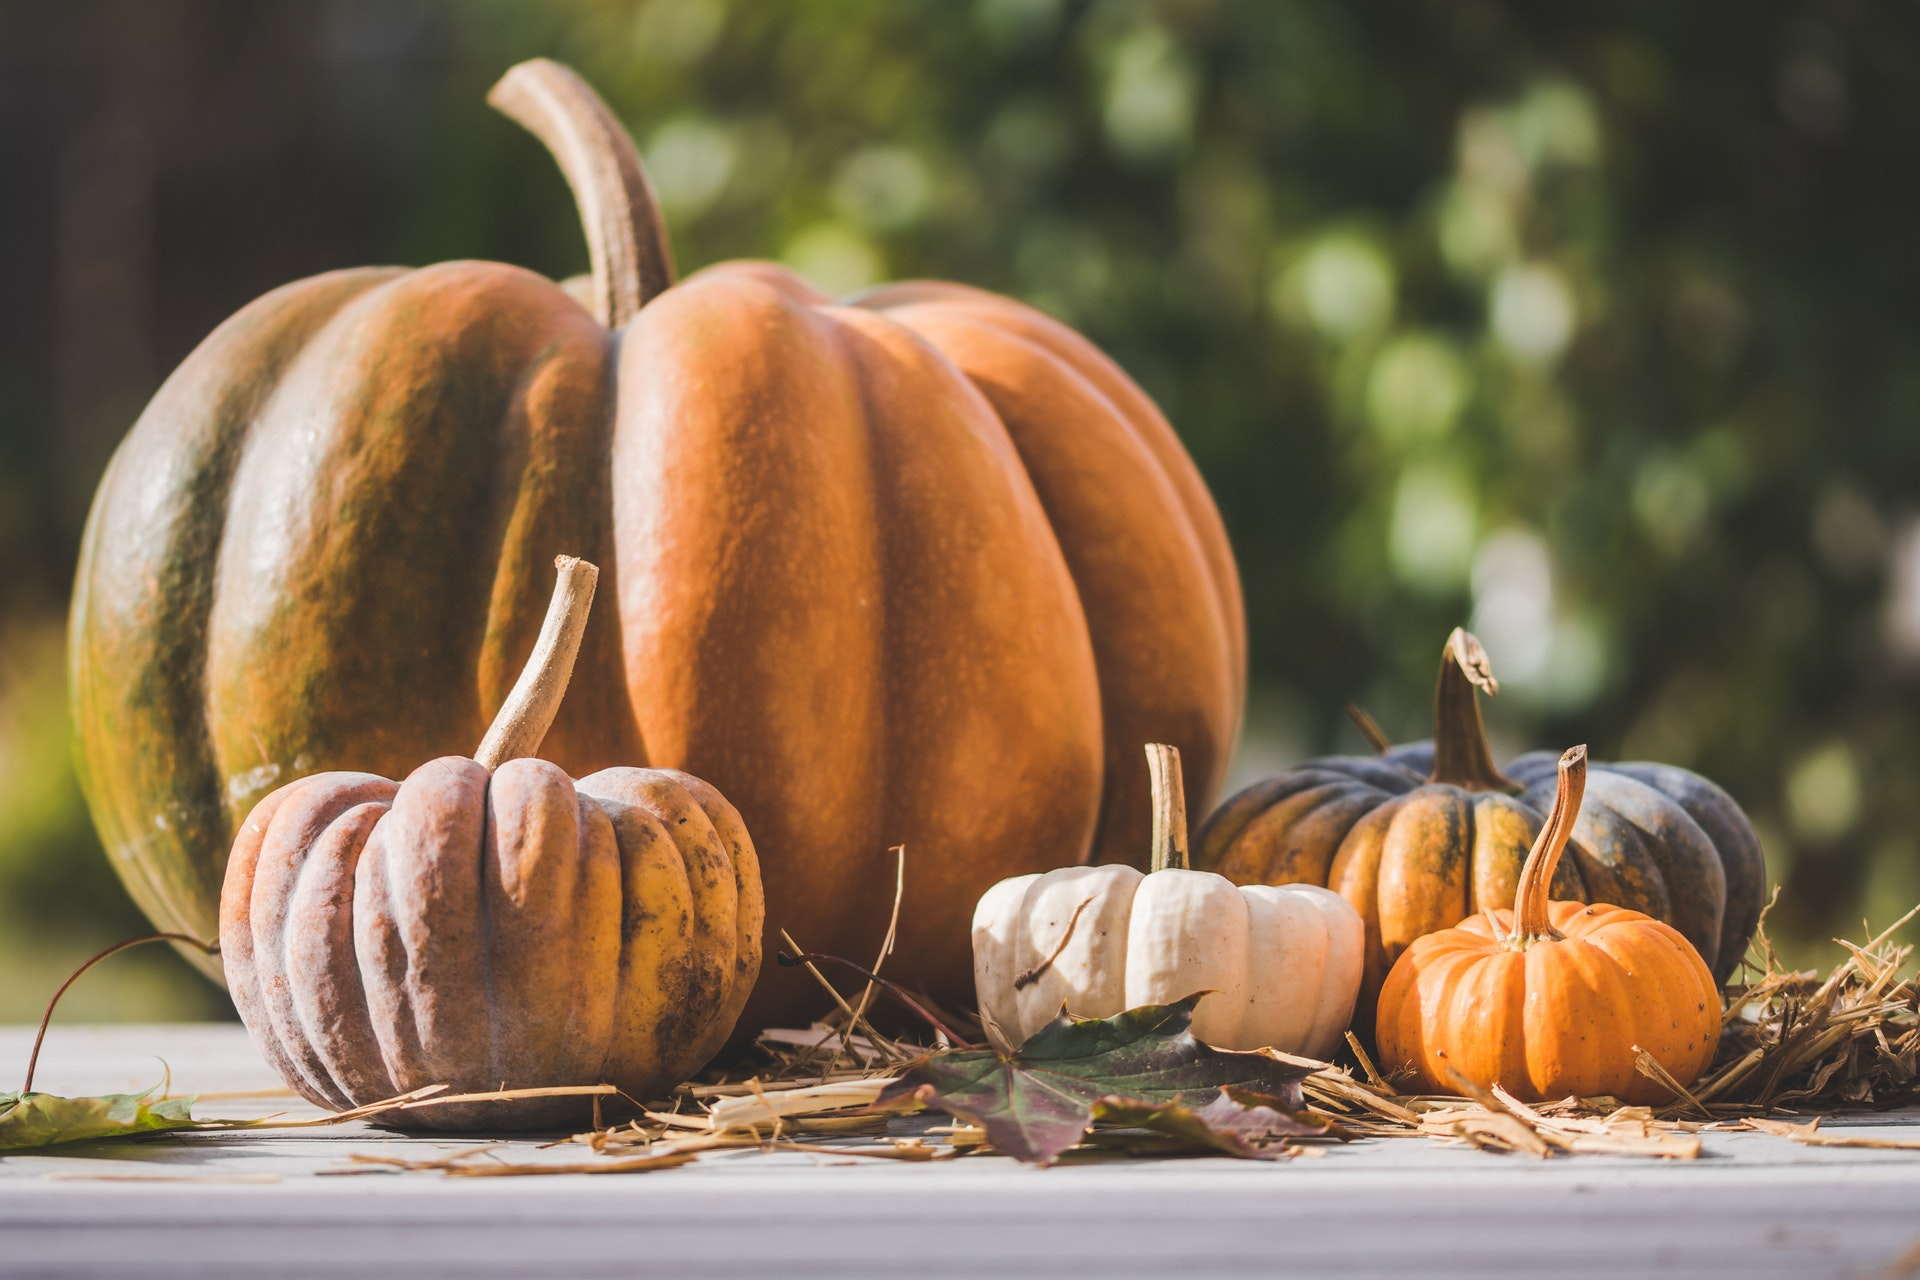 Photo of Five Pumpkins on a Table